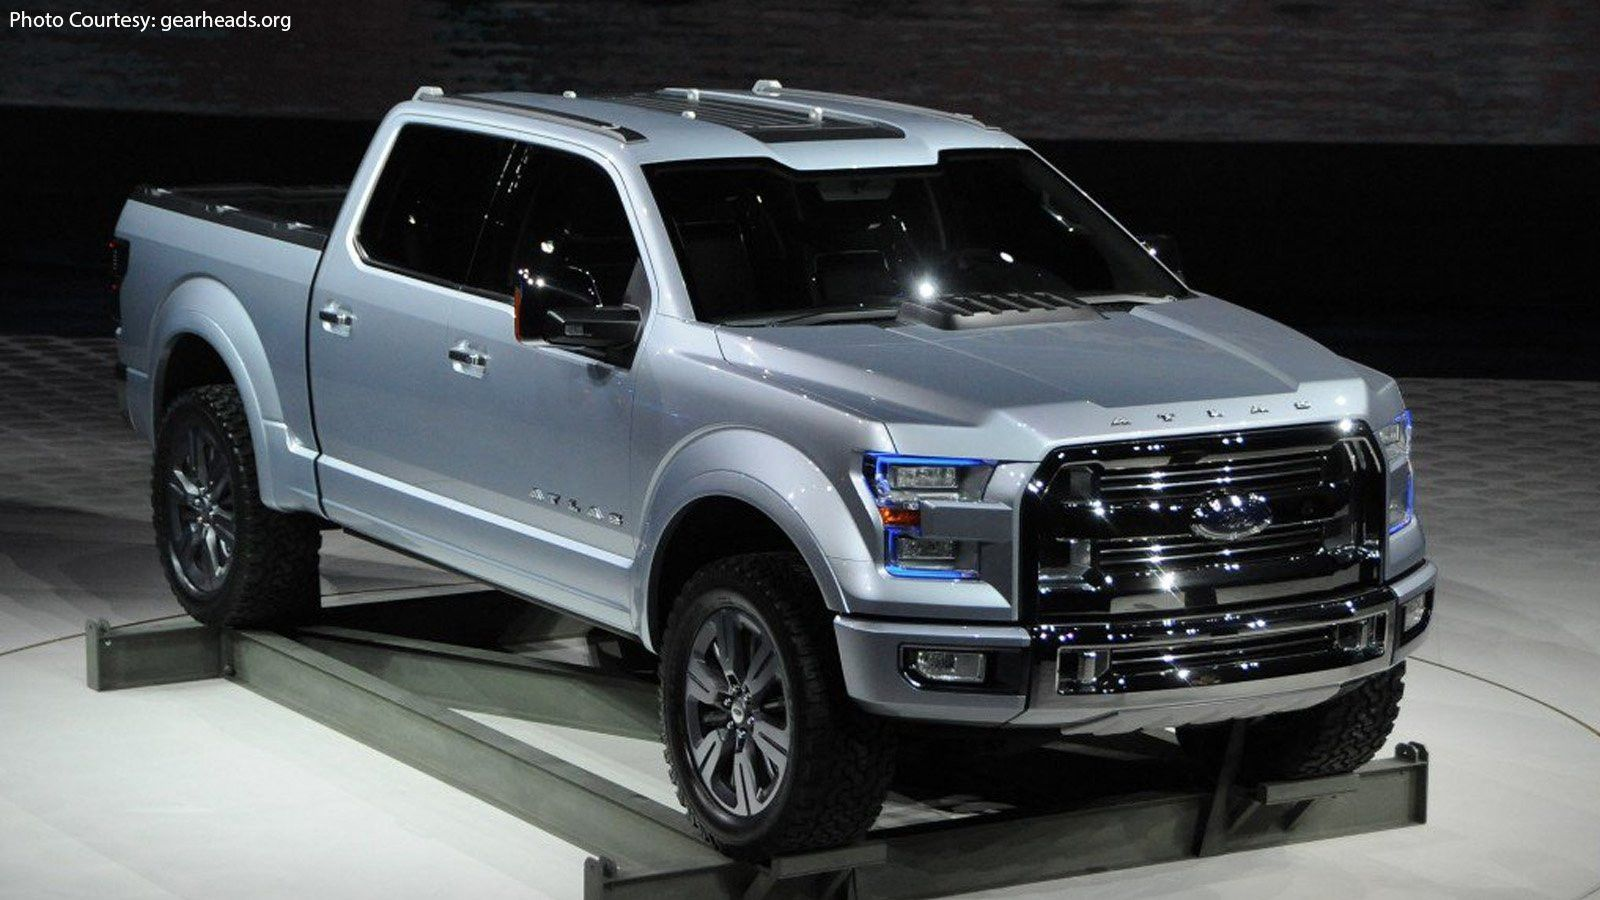 Ford F 150 Hybrid 2020 Specs And Review For Ford F 150 Hybrid 2020 Spy Shoot Di 2020